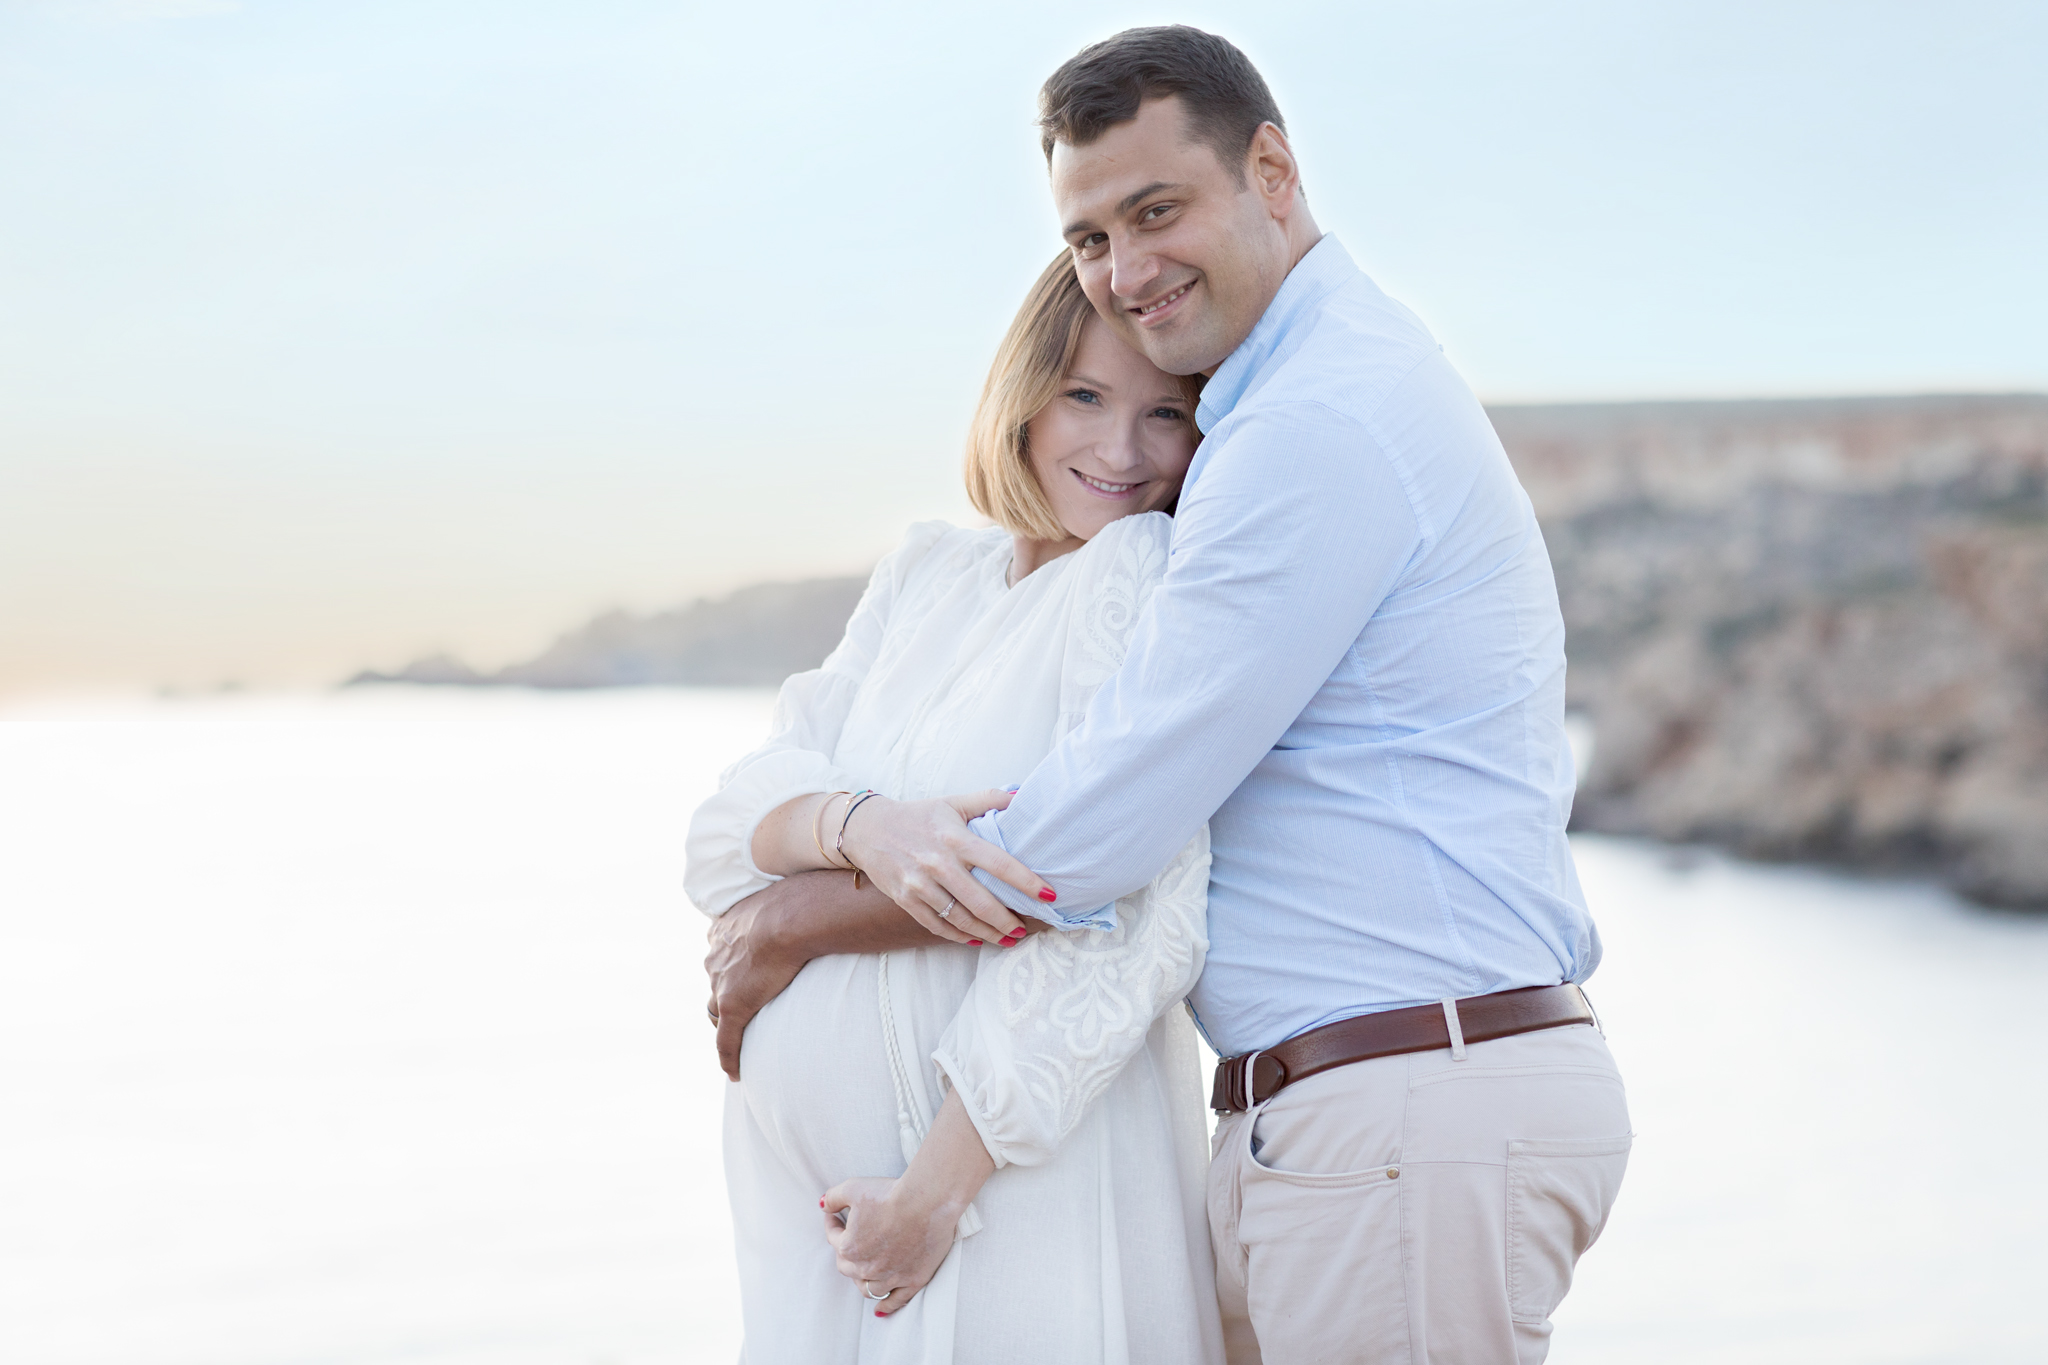 holding on, gorgeous sunset, happy parents, backlight, passionate maternity photographer malta, relaxed photo session, last photo